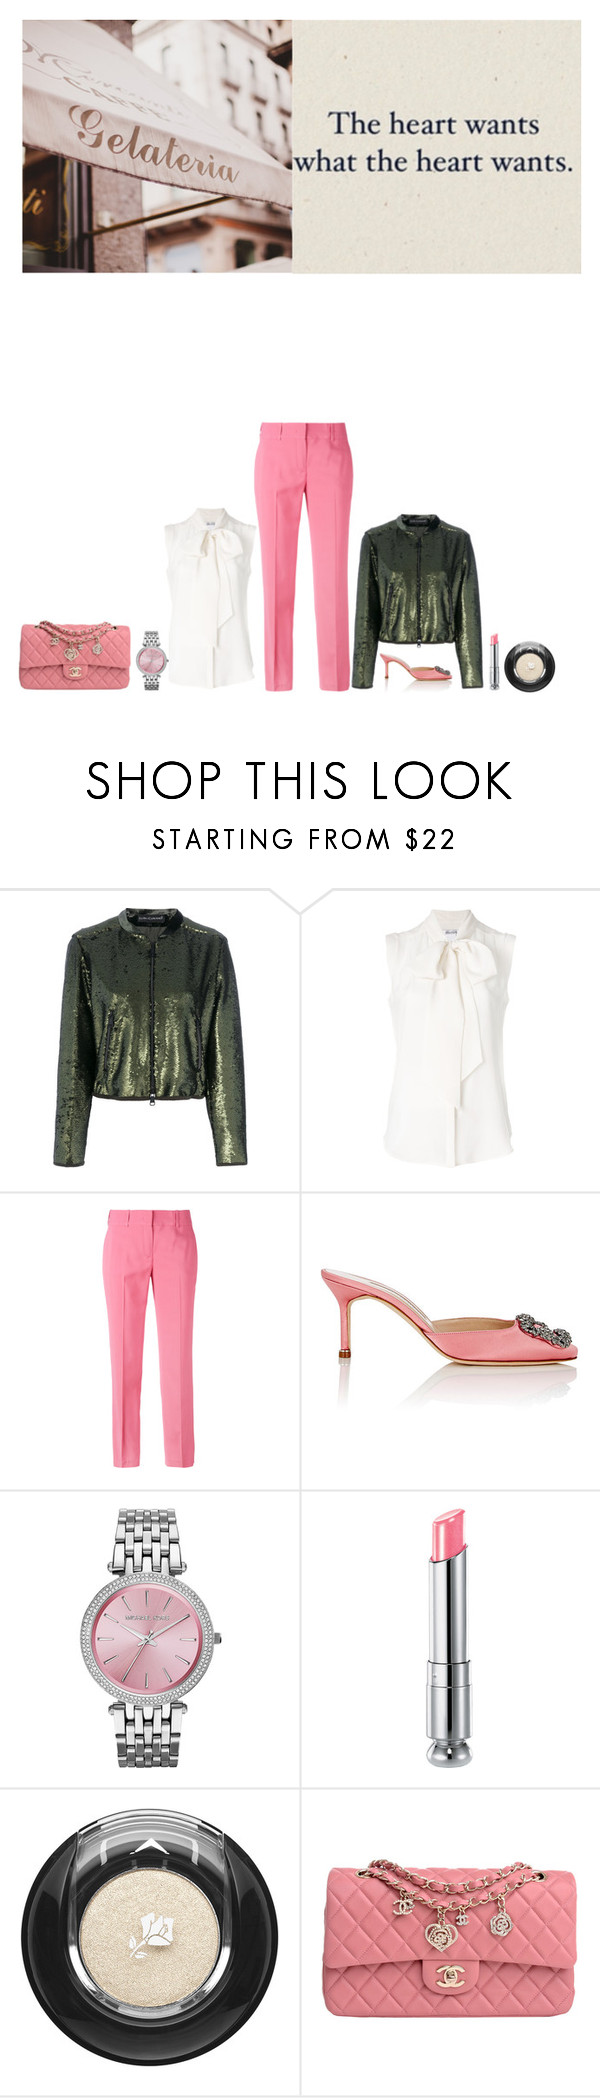 """""""22.07.2017"""" by chrissy6 ❤ liked on Polyvore featuring LUISA CERANO, MaxMara, Ermanno Scervino, Manolo Blahnik, Michael Kors, Christian Dior, Lancôme and Chanel"""